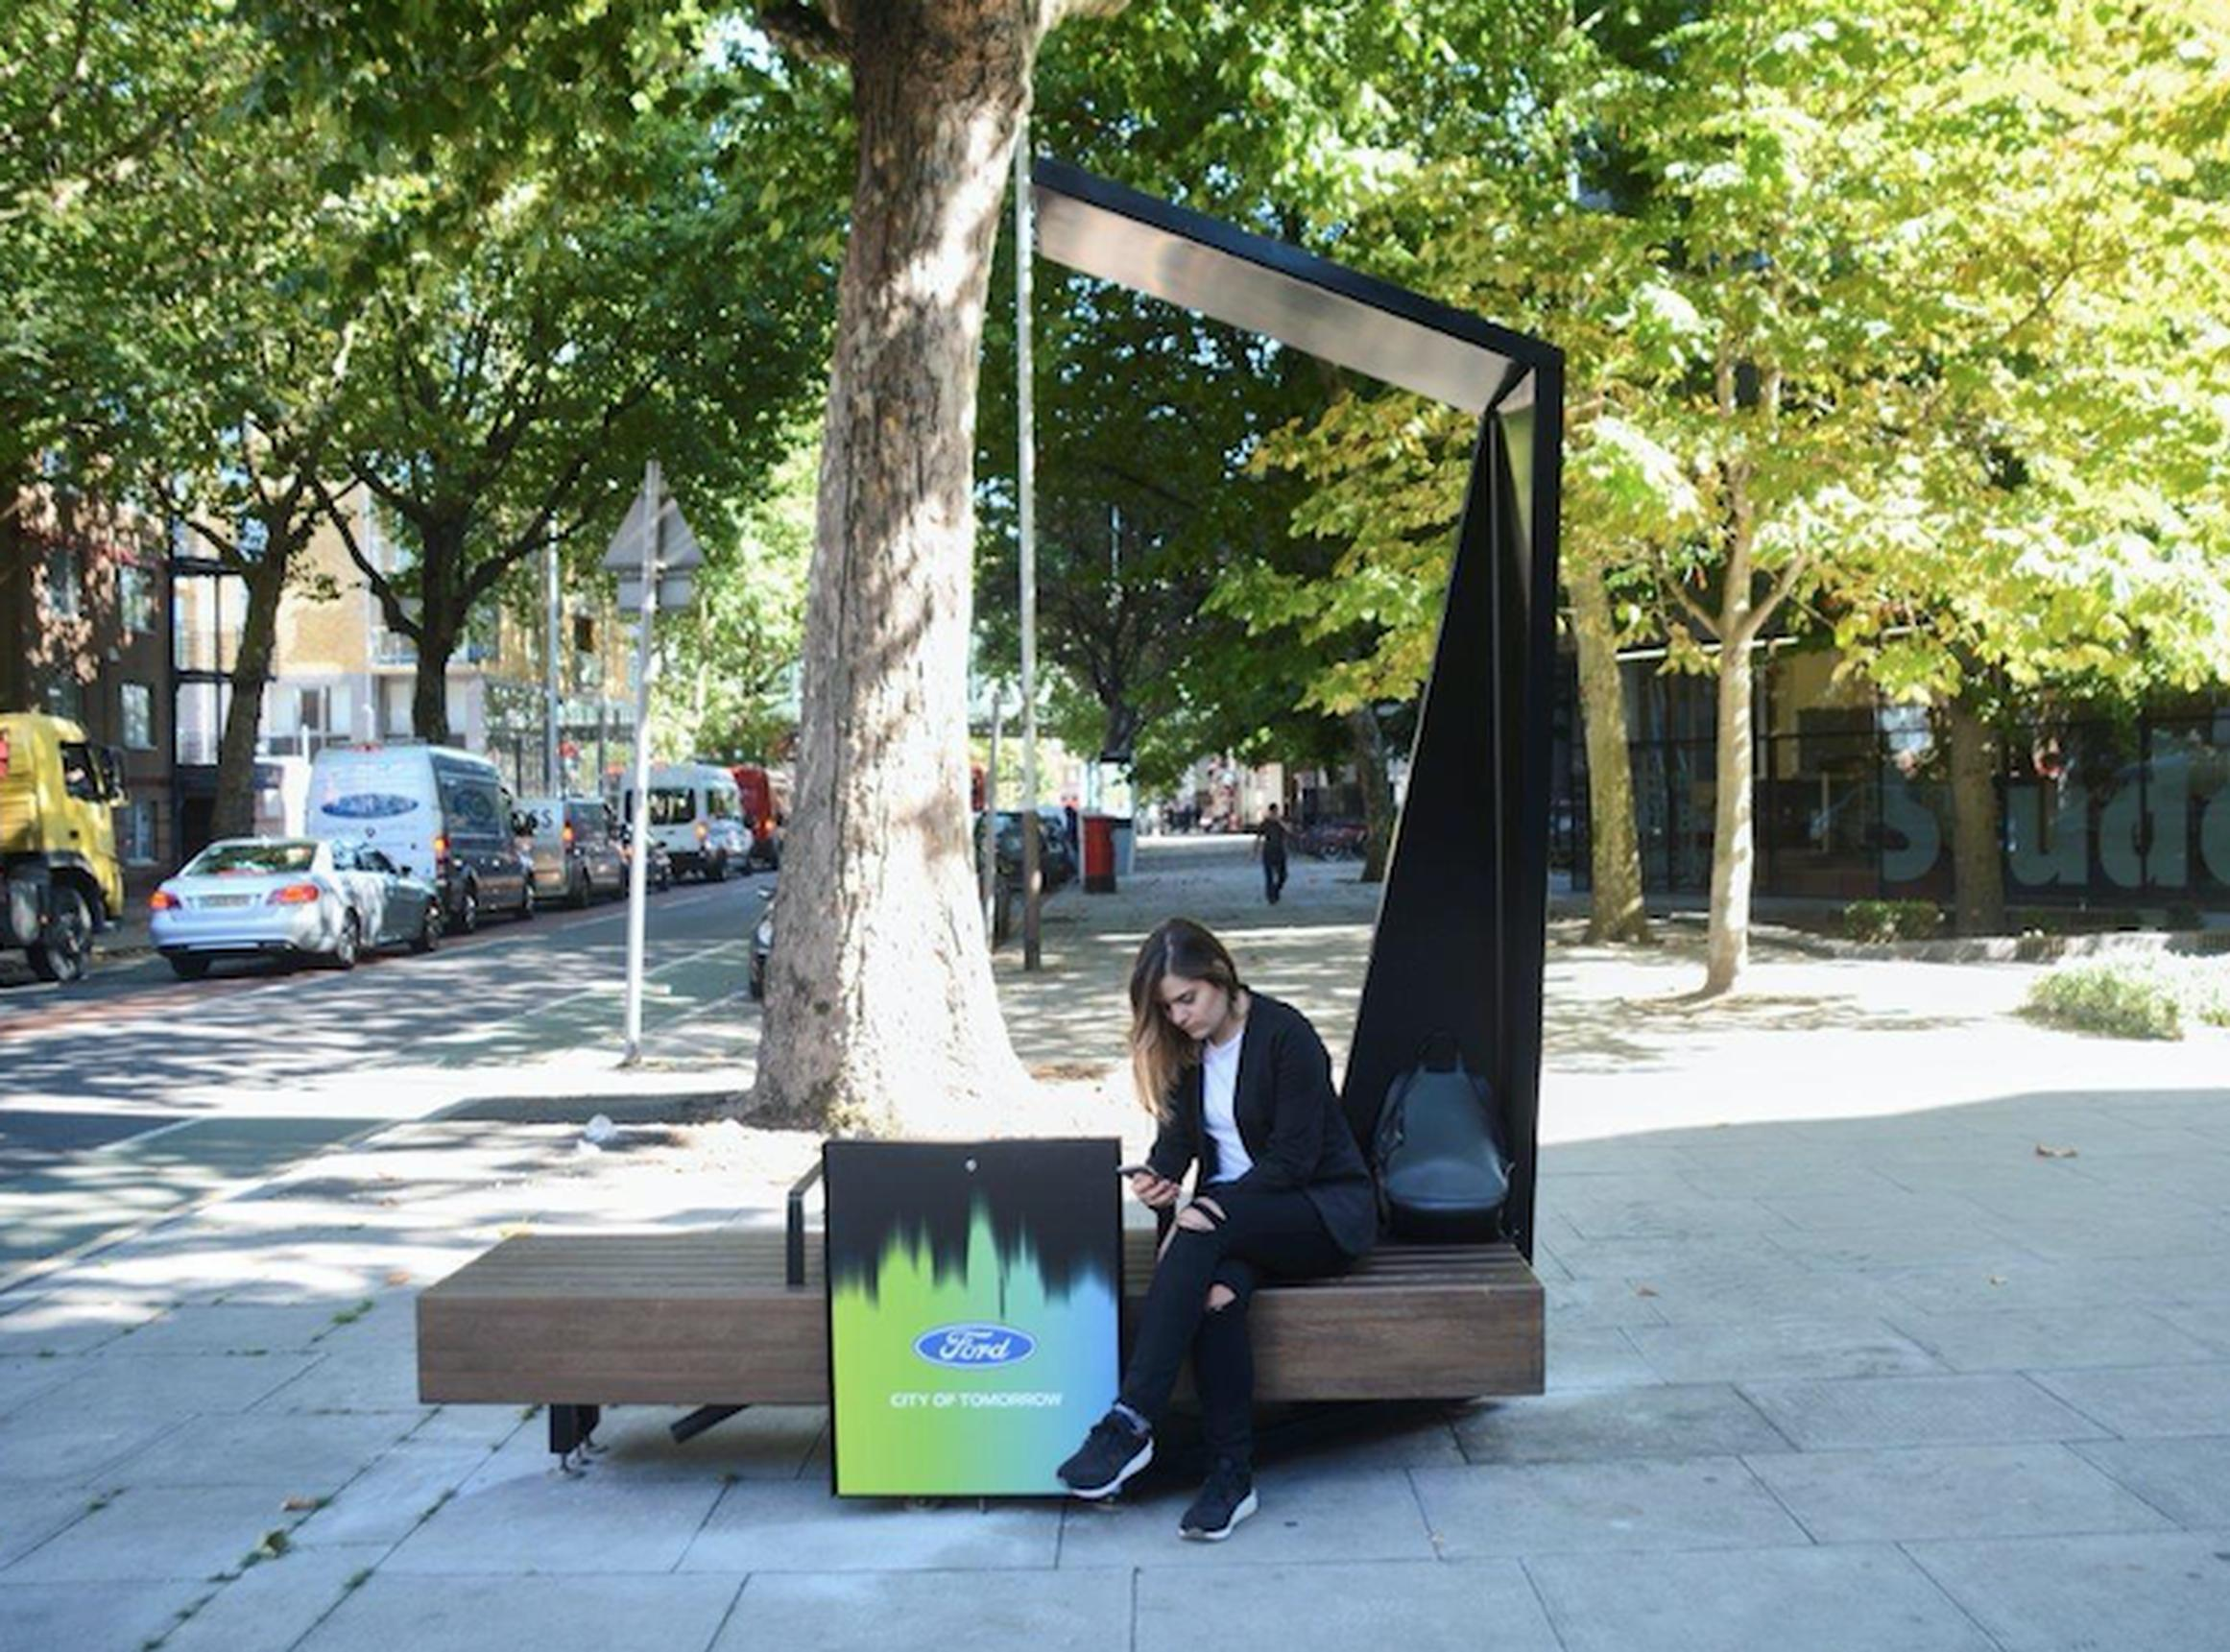 20 Ford Smart Benches will be installed at various locations in London